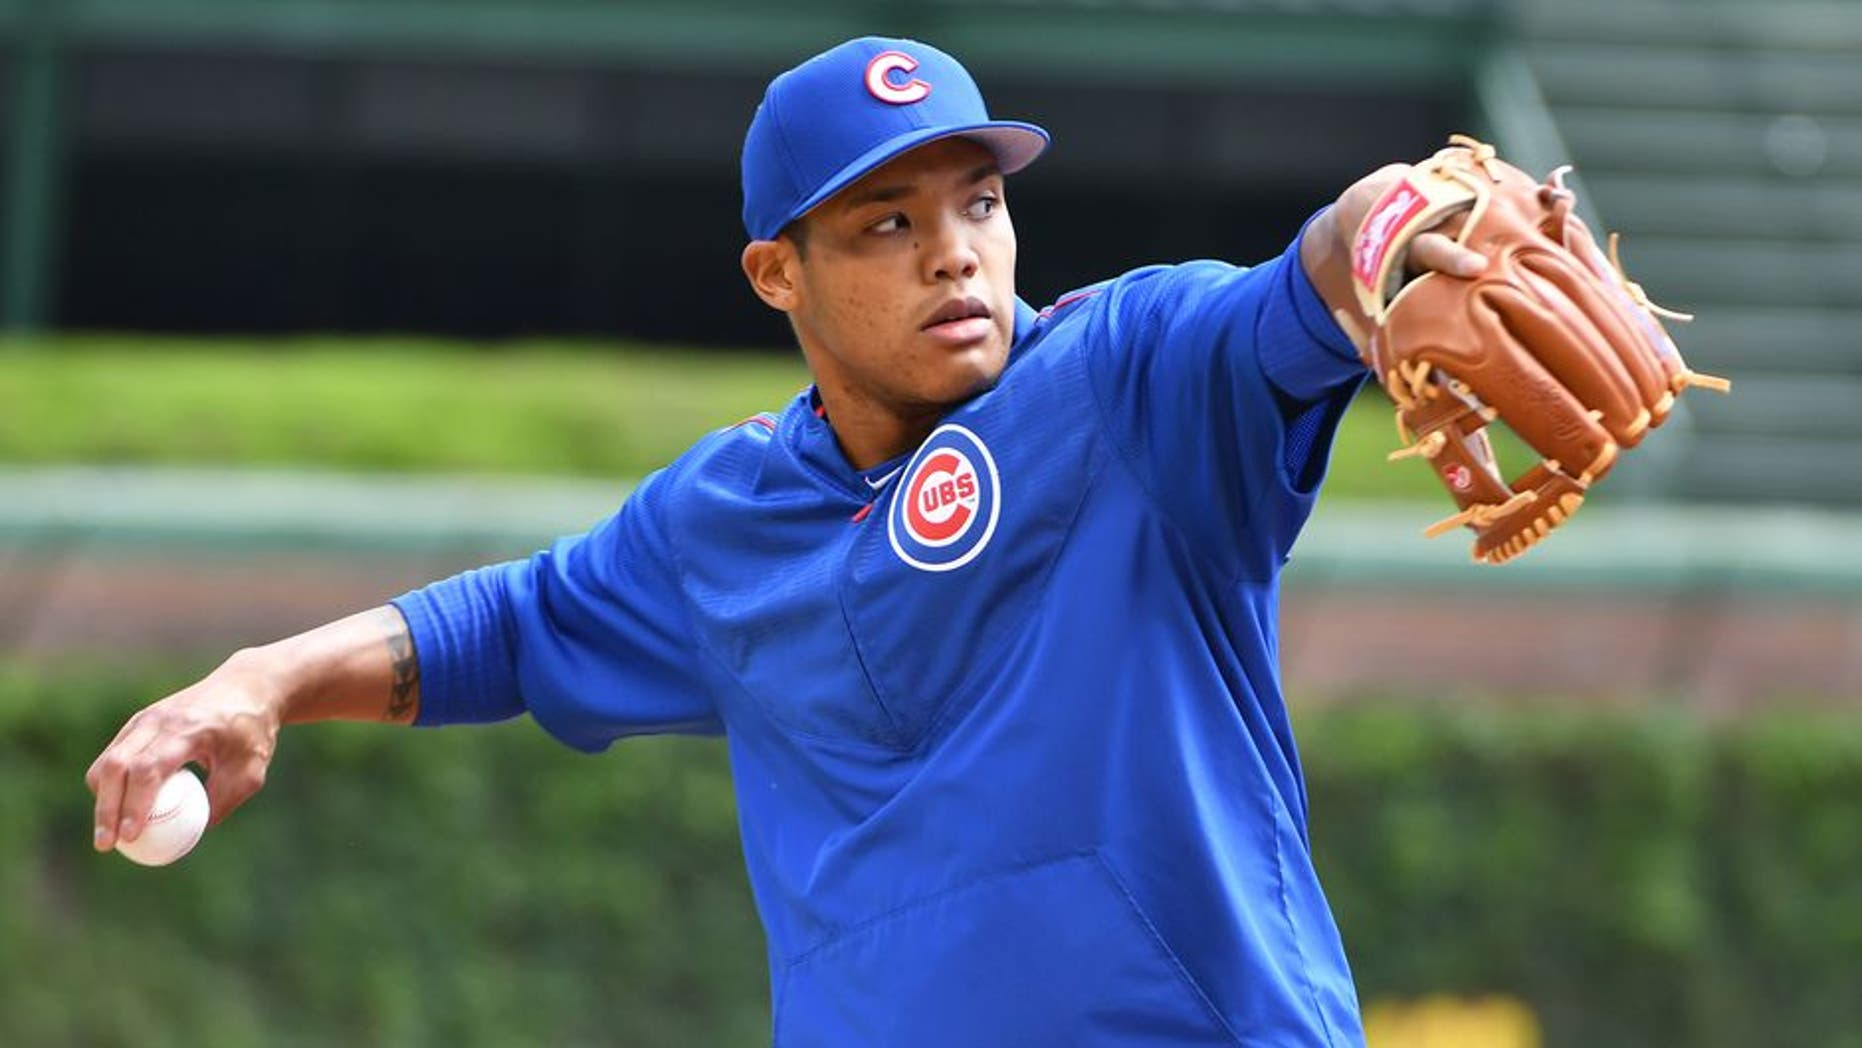 CHICAGO, IL - MAY 21: Chicago Cubs Shortstop Addison Russell (27) warms up before a MLB game between the Chicago Cubs and Milwaukee Brewers on May 21, 2017 at Wrigley Field in Chicago, IL. The Cubs defeated the Brewers 13-6. (Photo by Nick Wosika/Icon Sportswire via Getty Images)